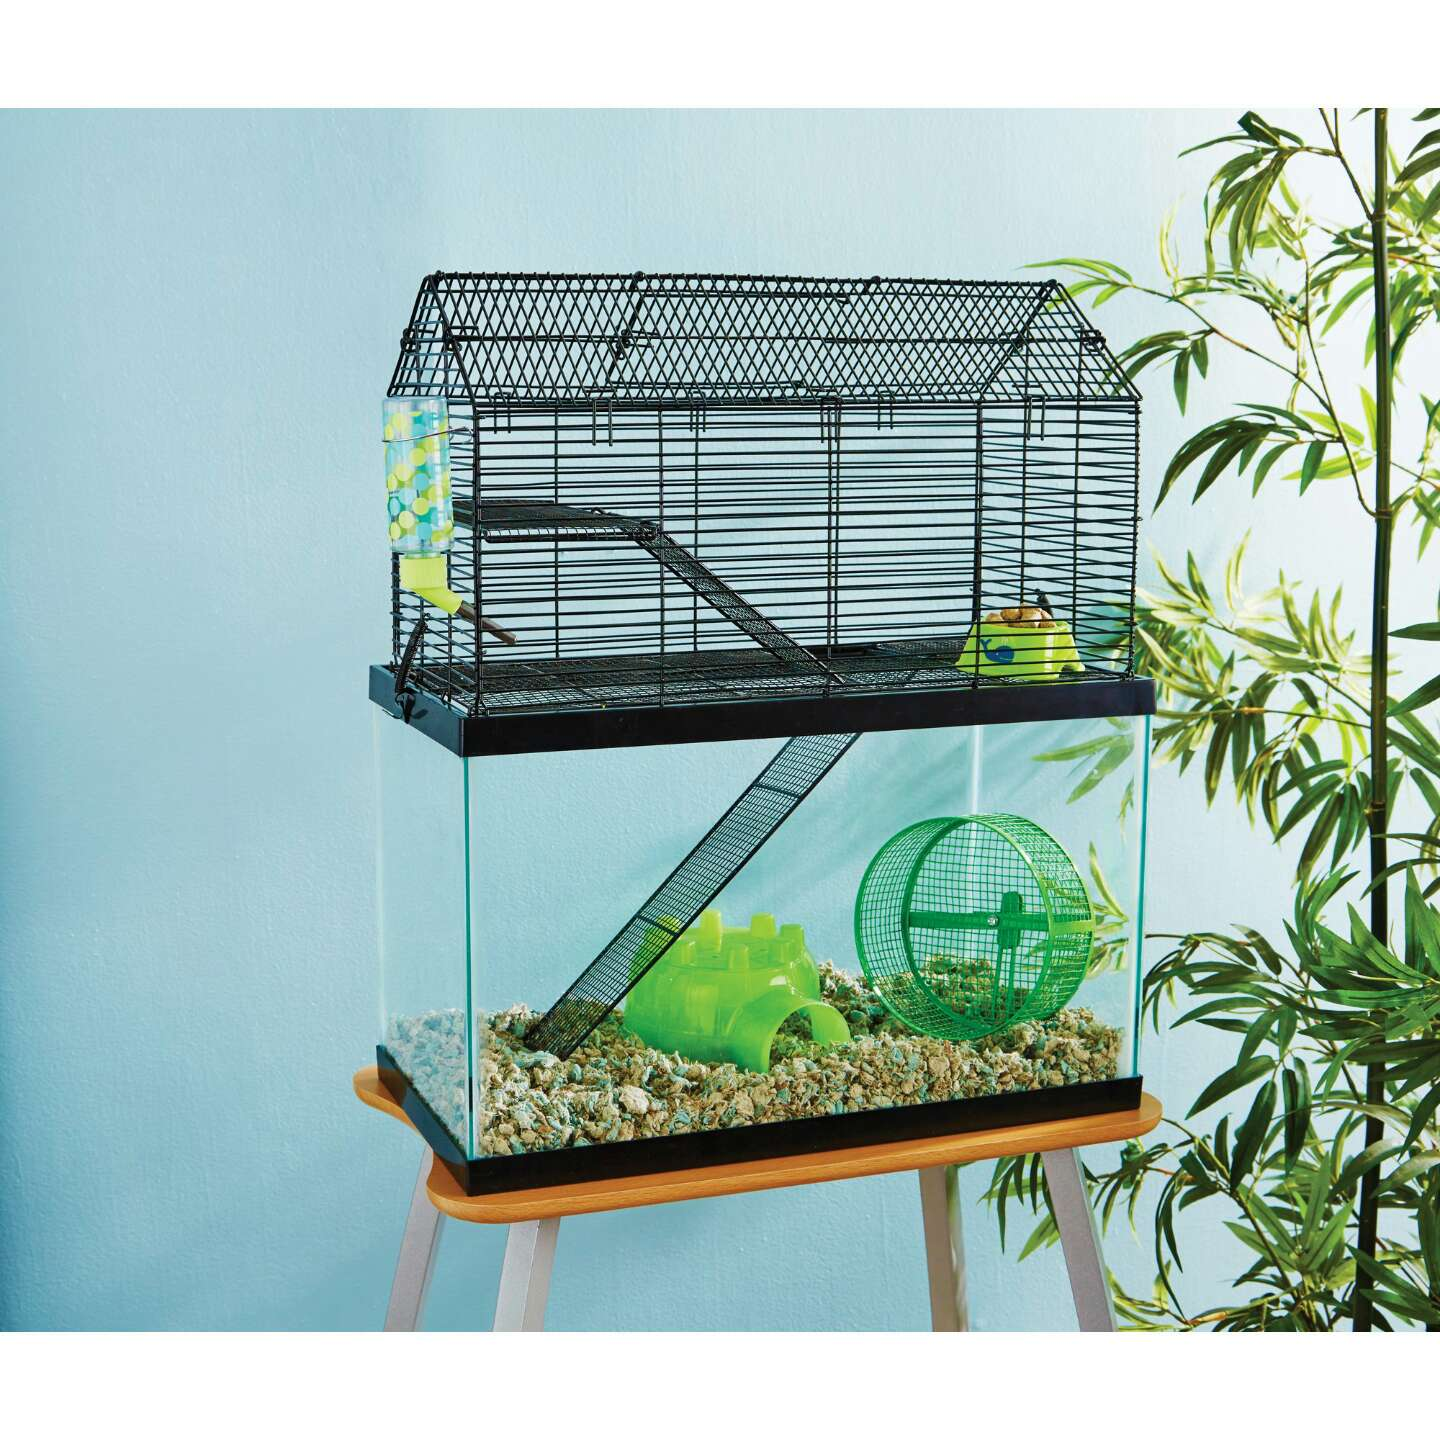 High rise small animal tank topper for sale in san diego for Does petco sell fish